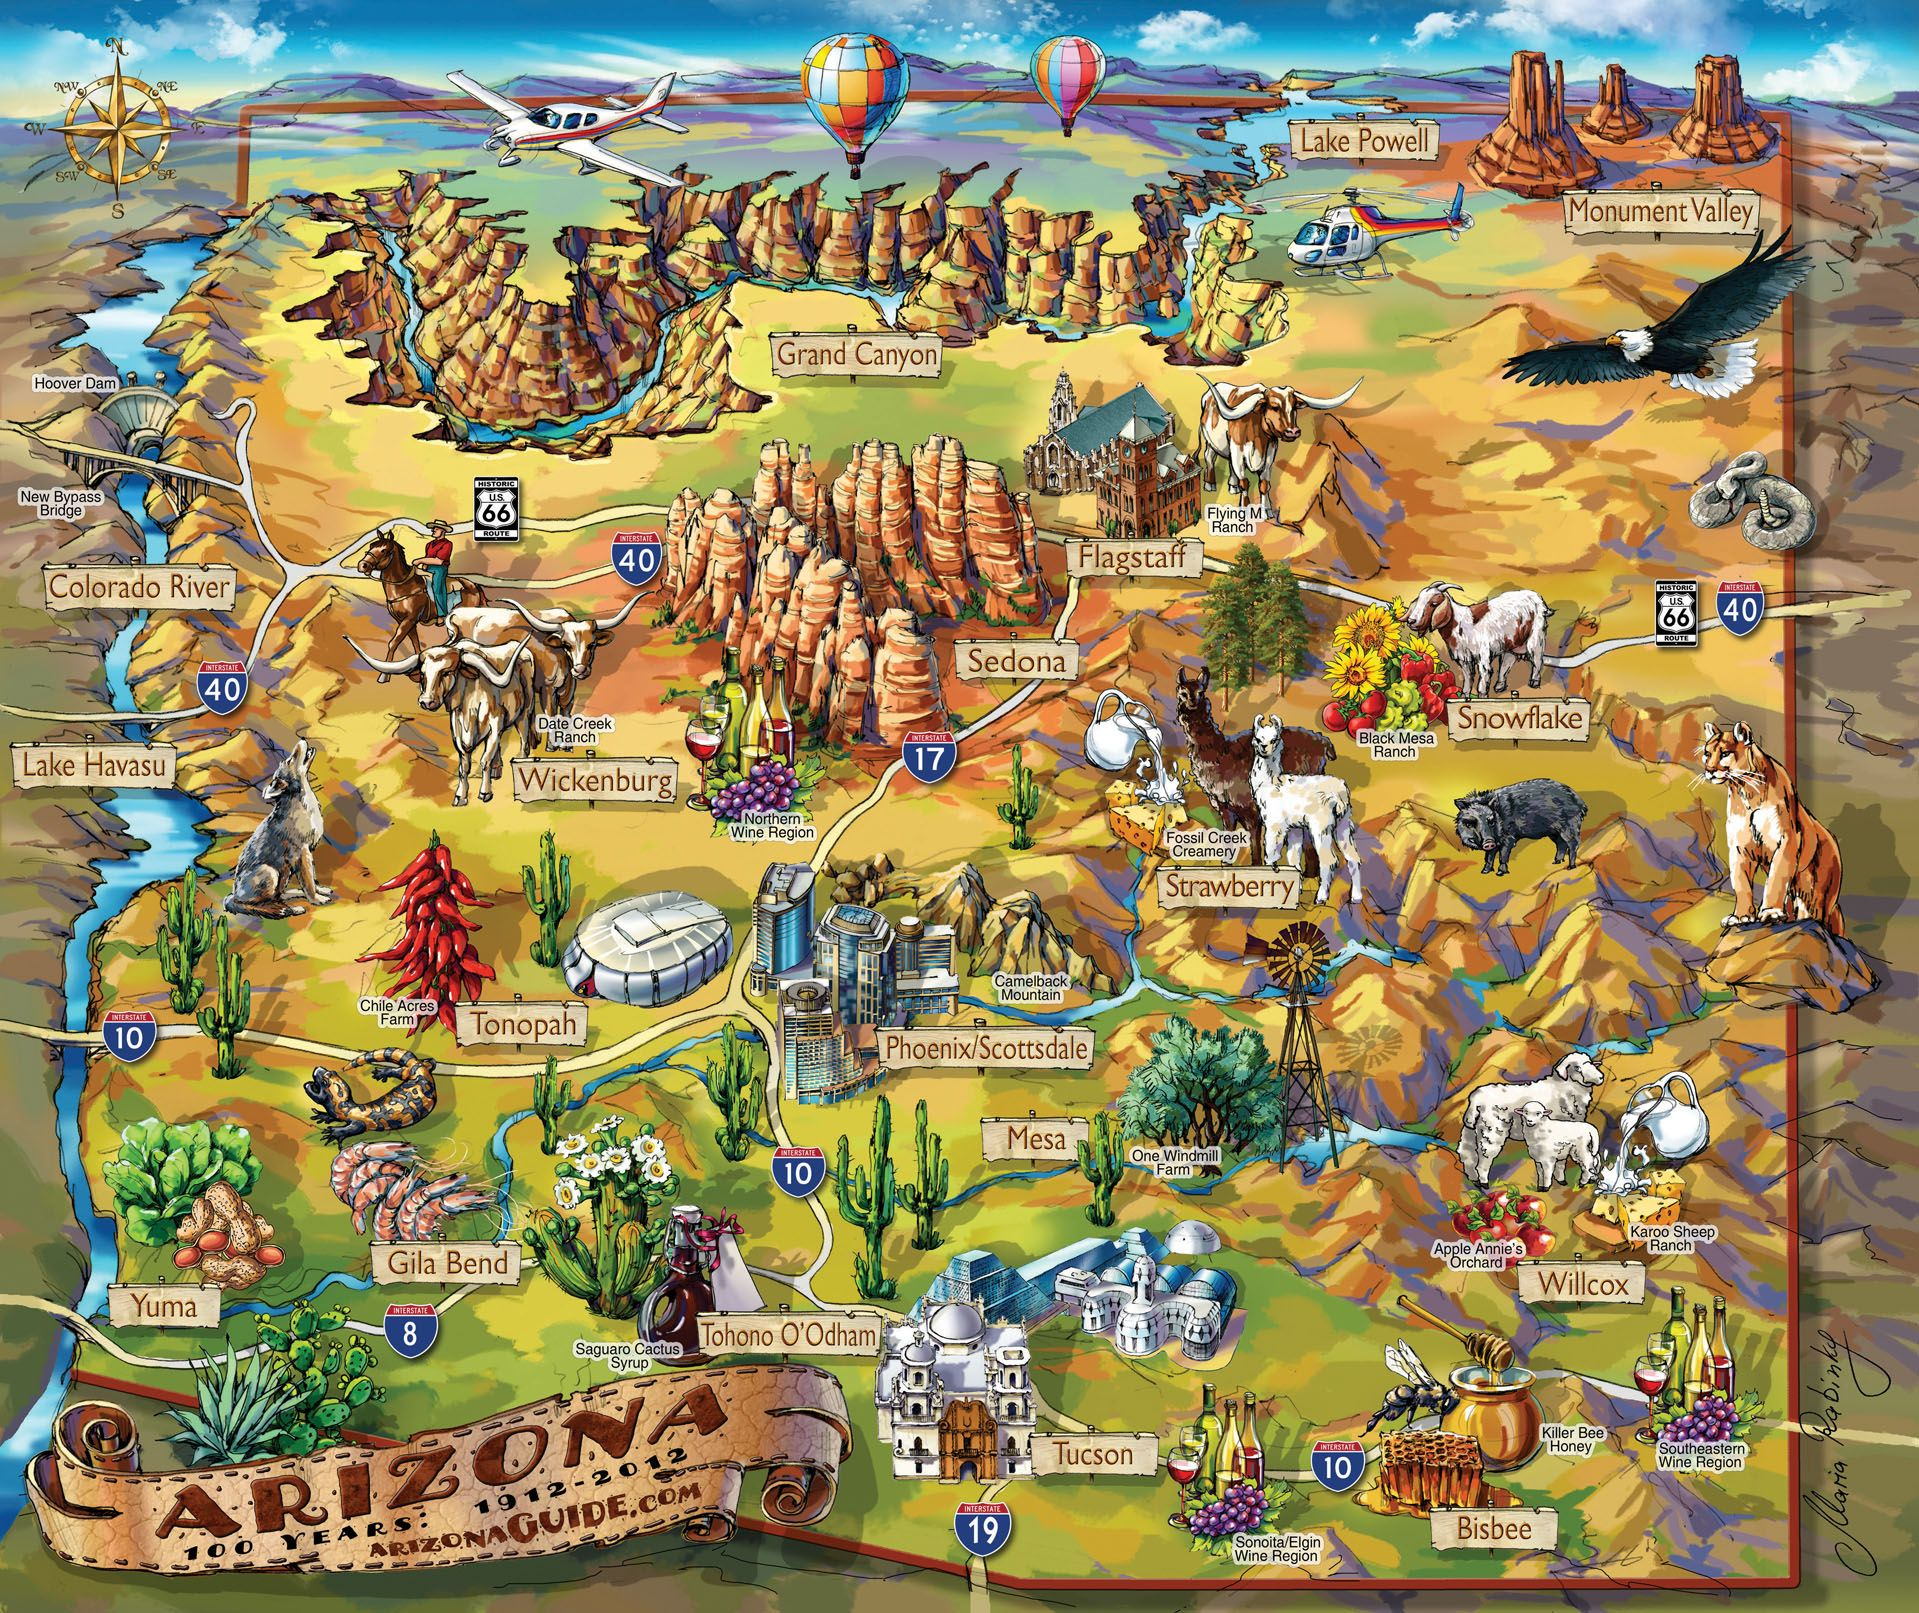 Travel Map Of Arizona Illustrated Arizona Map | TRISTAN'S HIDEOUT!⛺   | Arizona travel